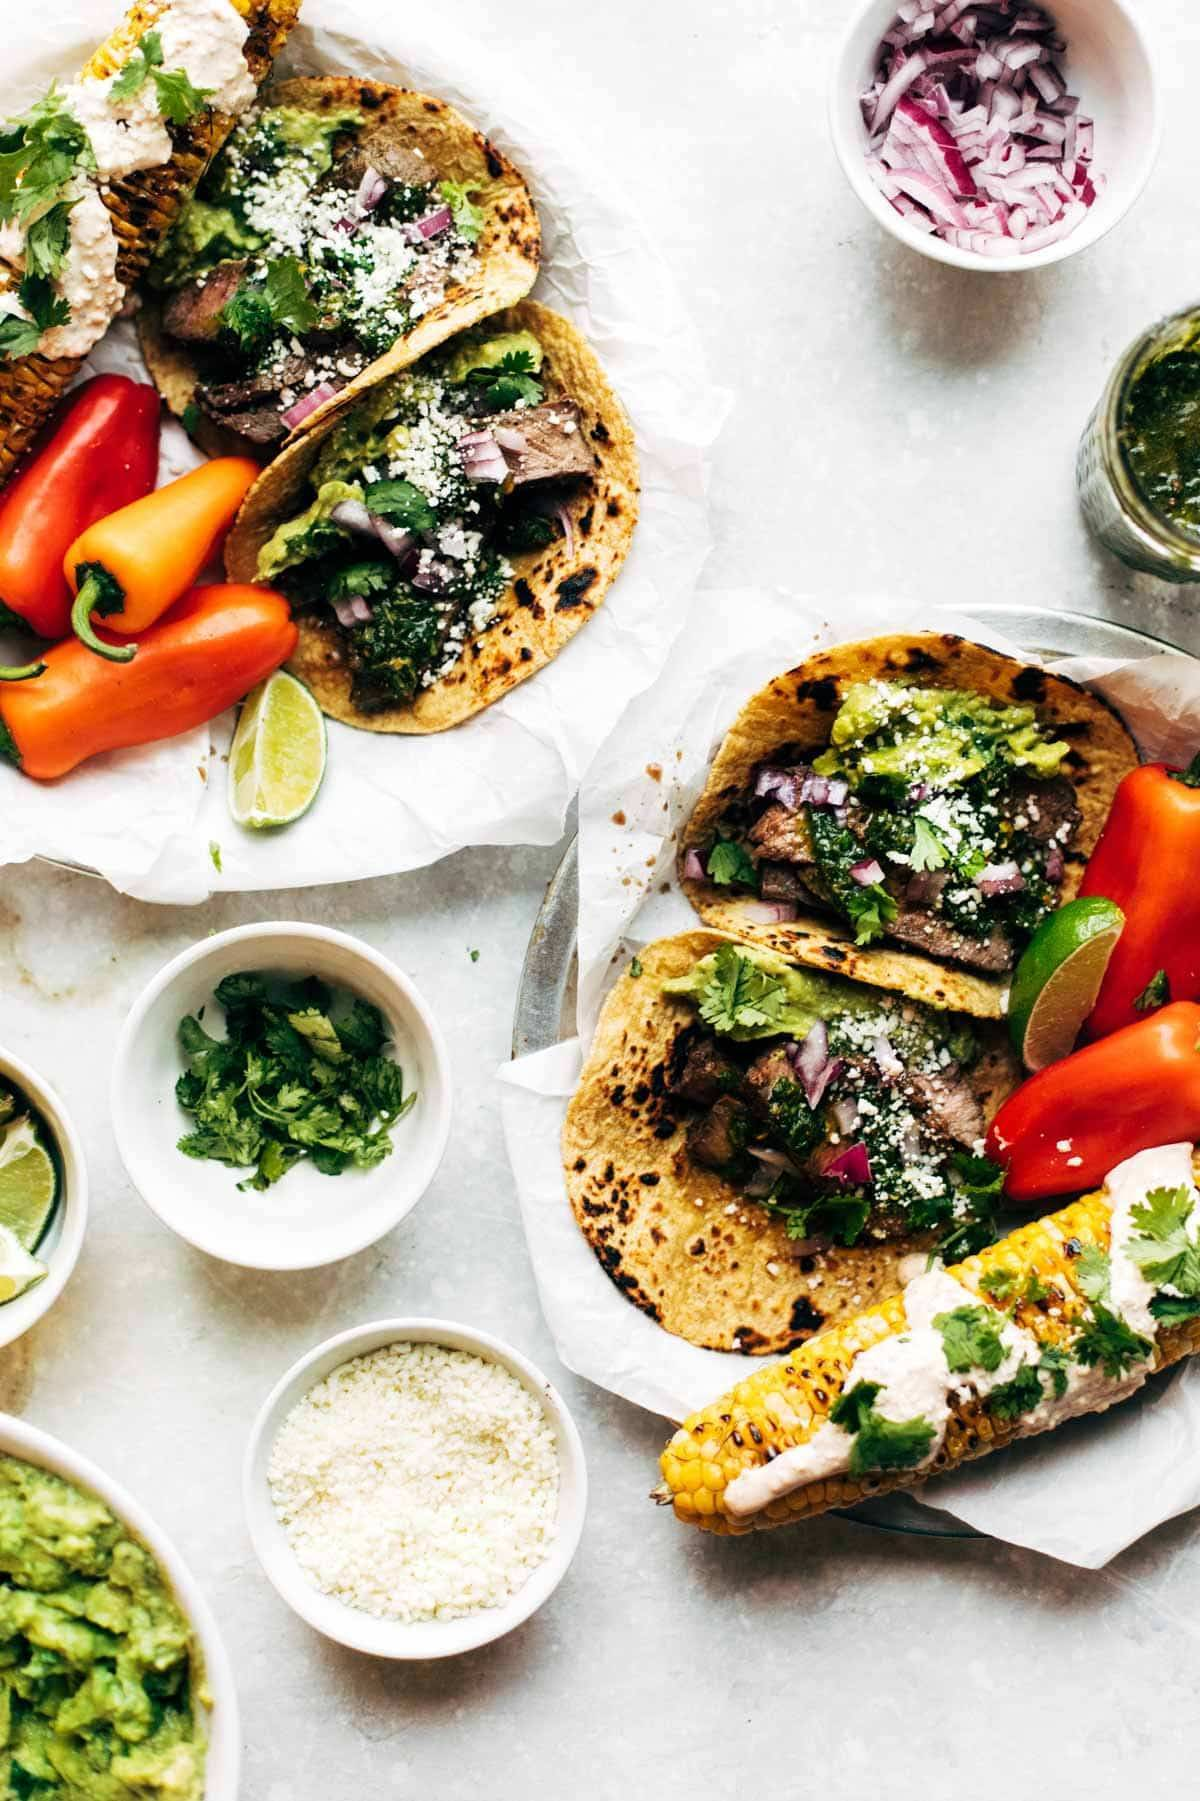 Chimichurri Steak Tacos - spicy marinated grilled steak, a quick chimi sauce, and all your other favorite toppings. Gluten free. | pinchofyum.com